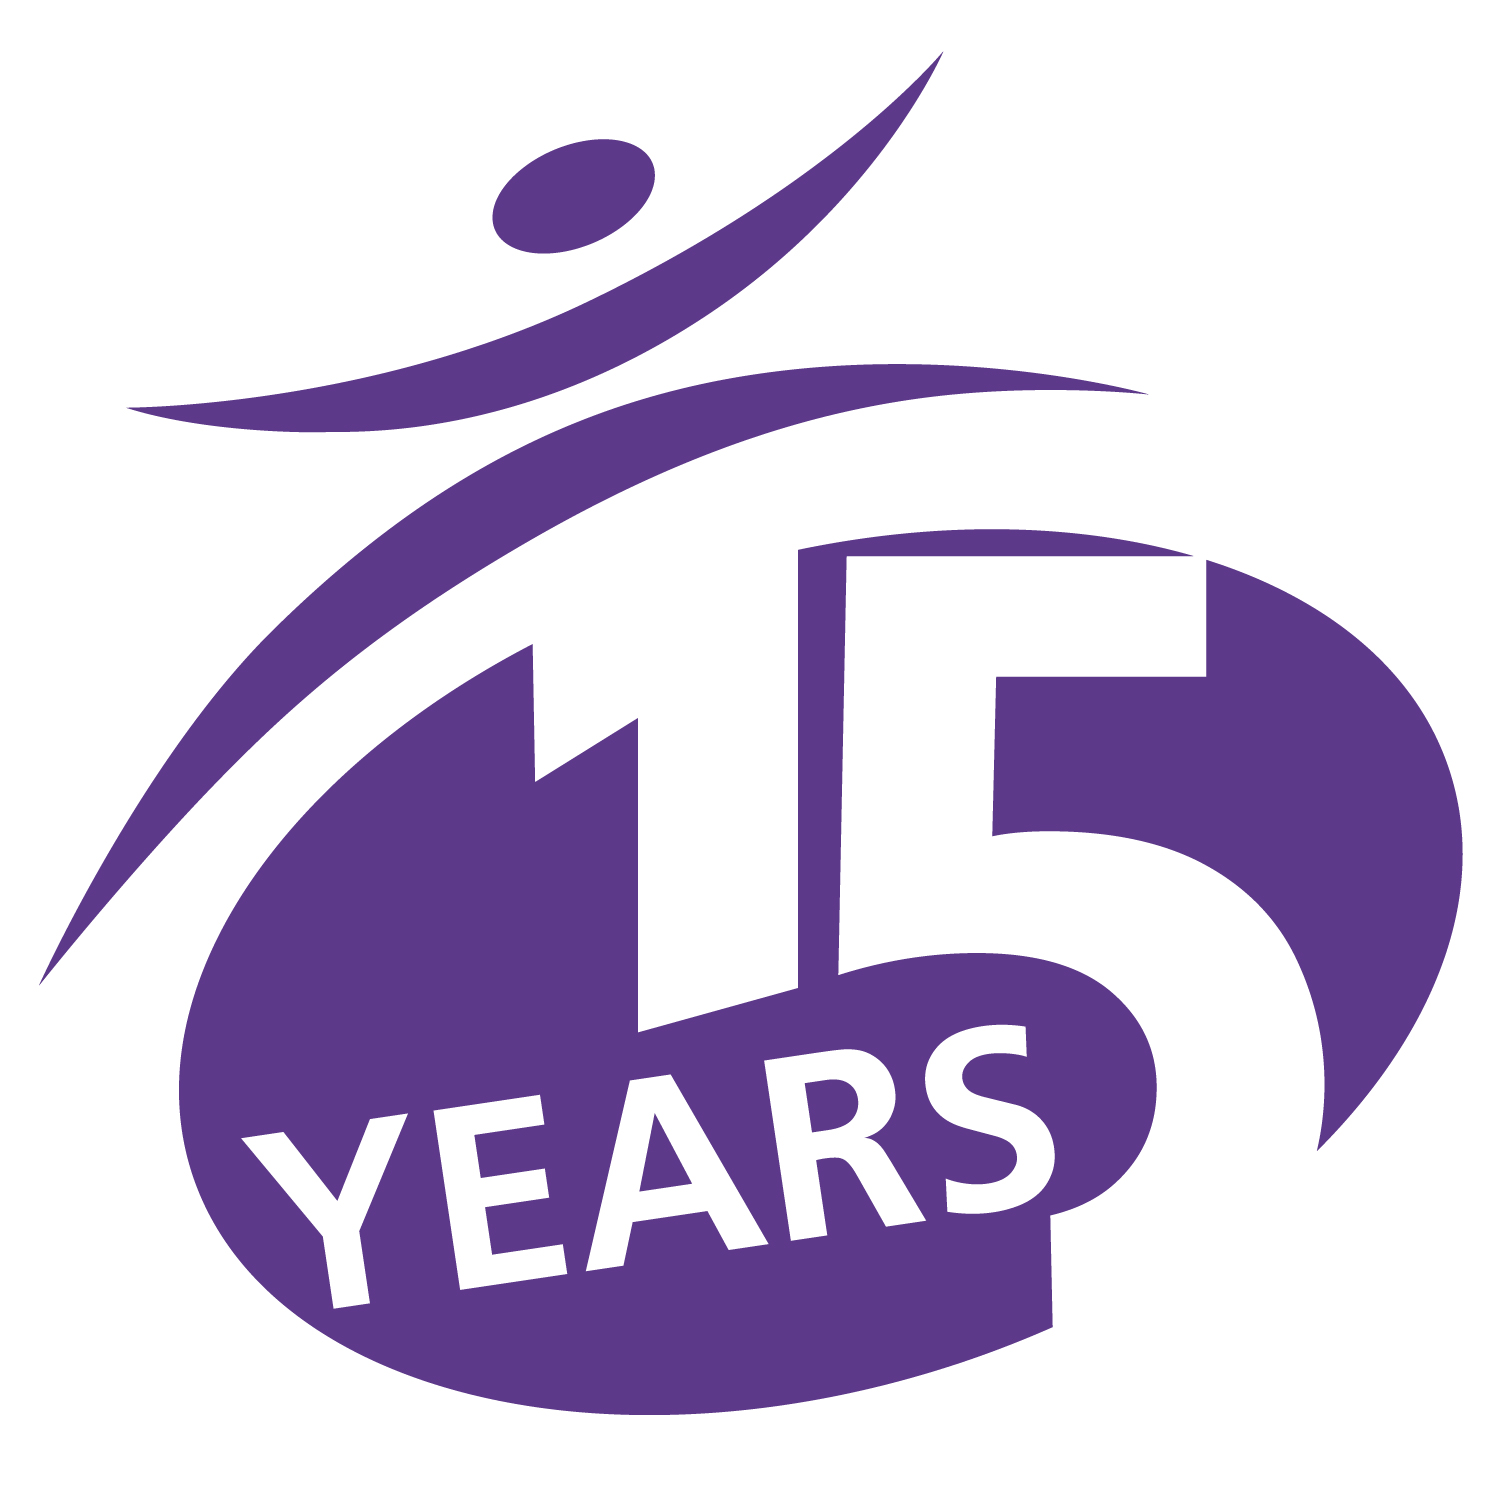 Pottstown Area Health & Wellness Foundation Celebrates 15 Years of Inspiring Change and Healthy Initiatives in the Community